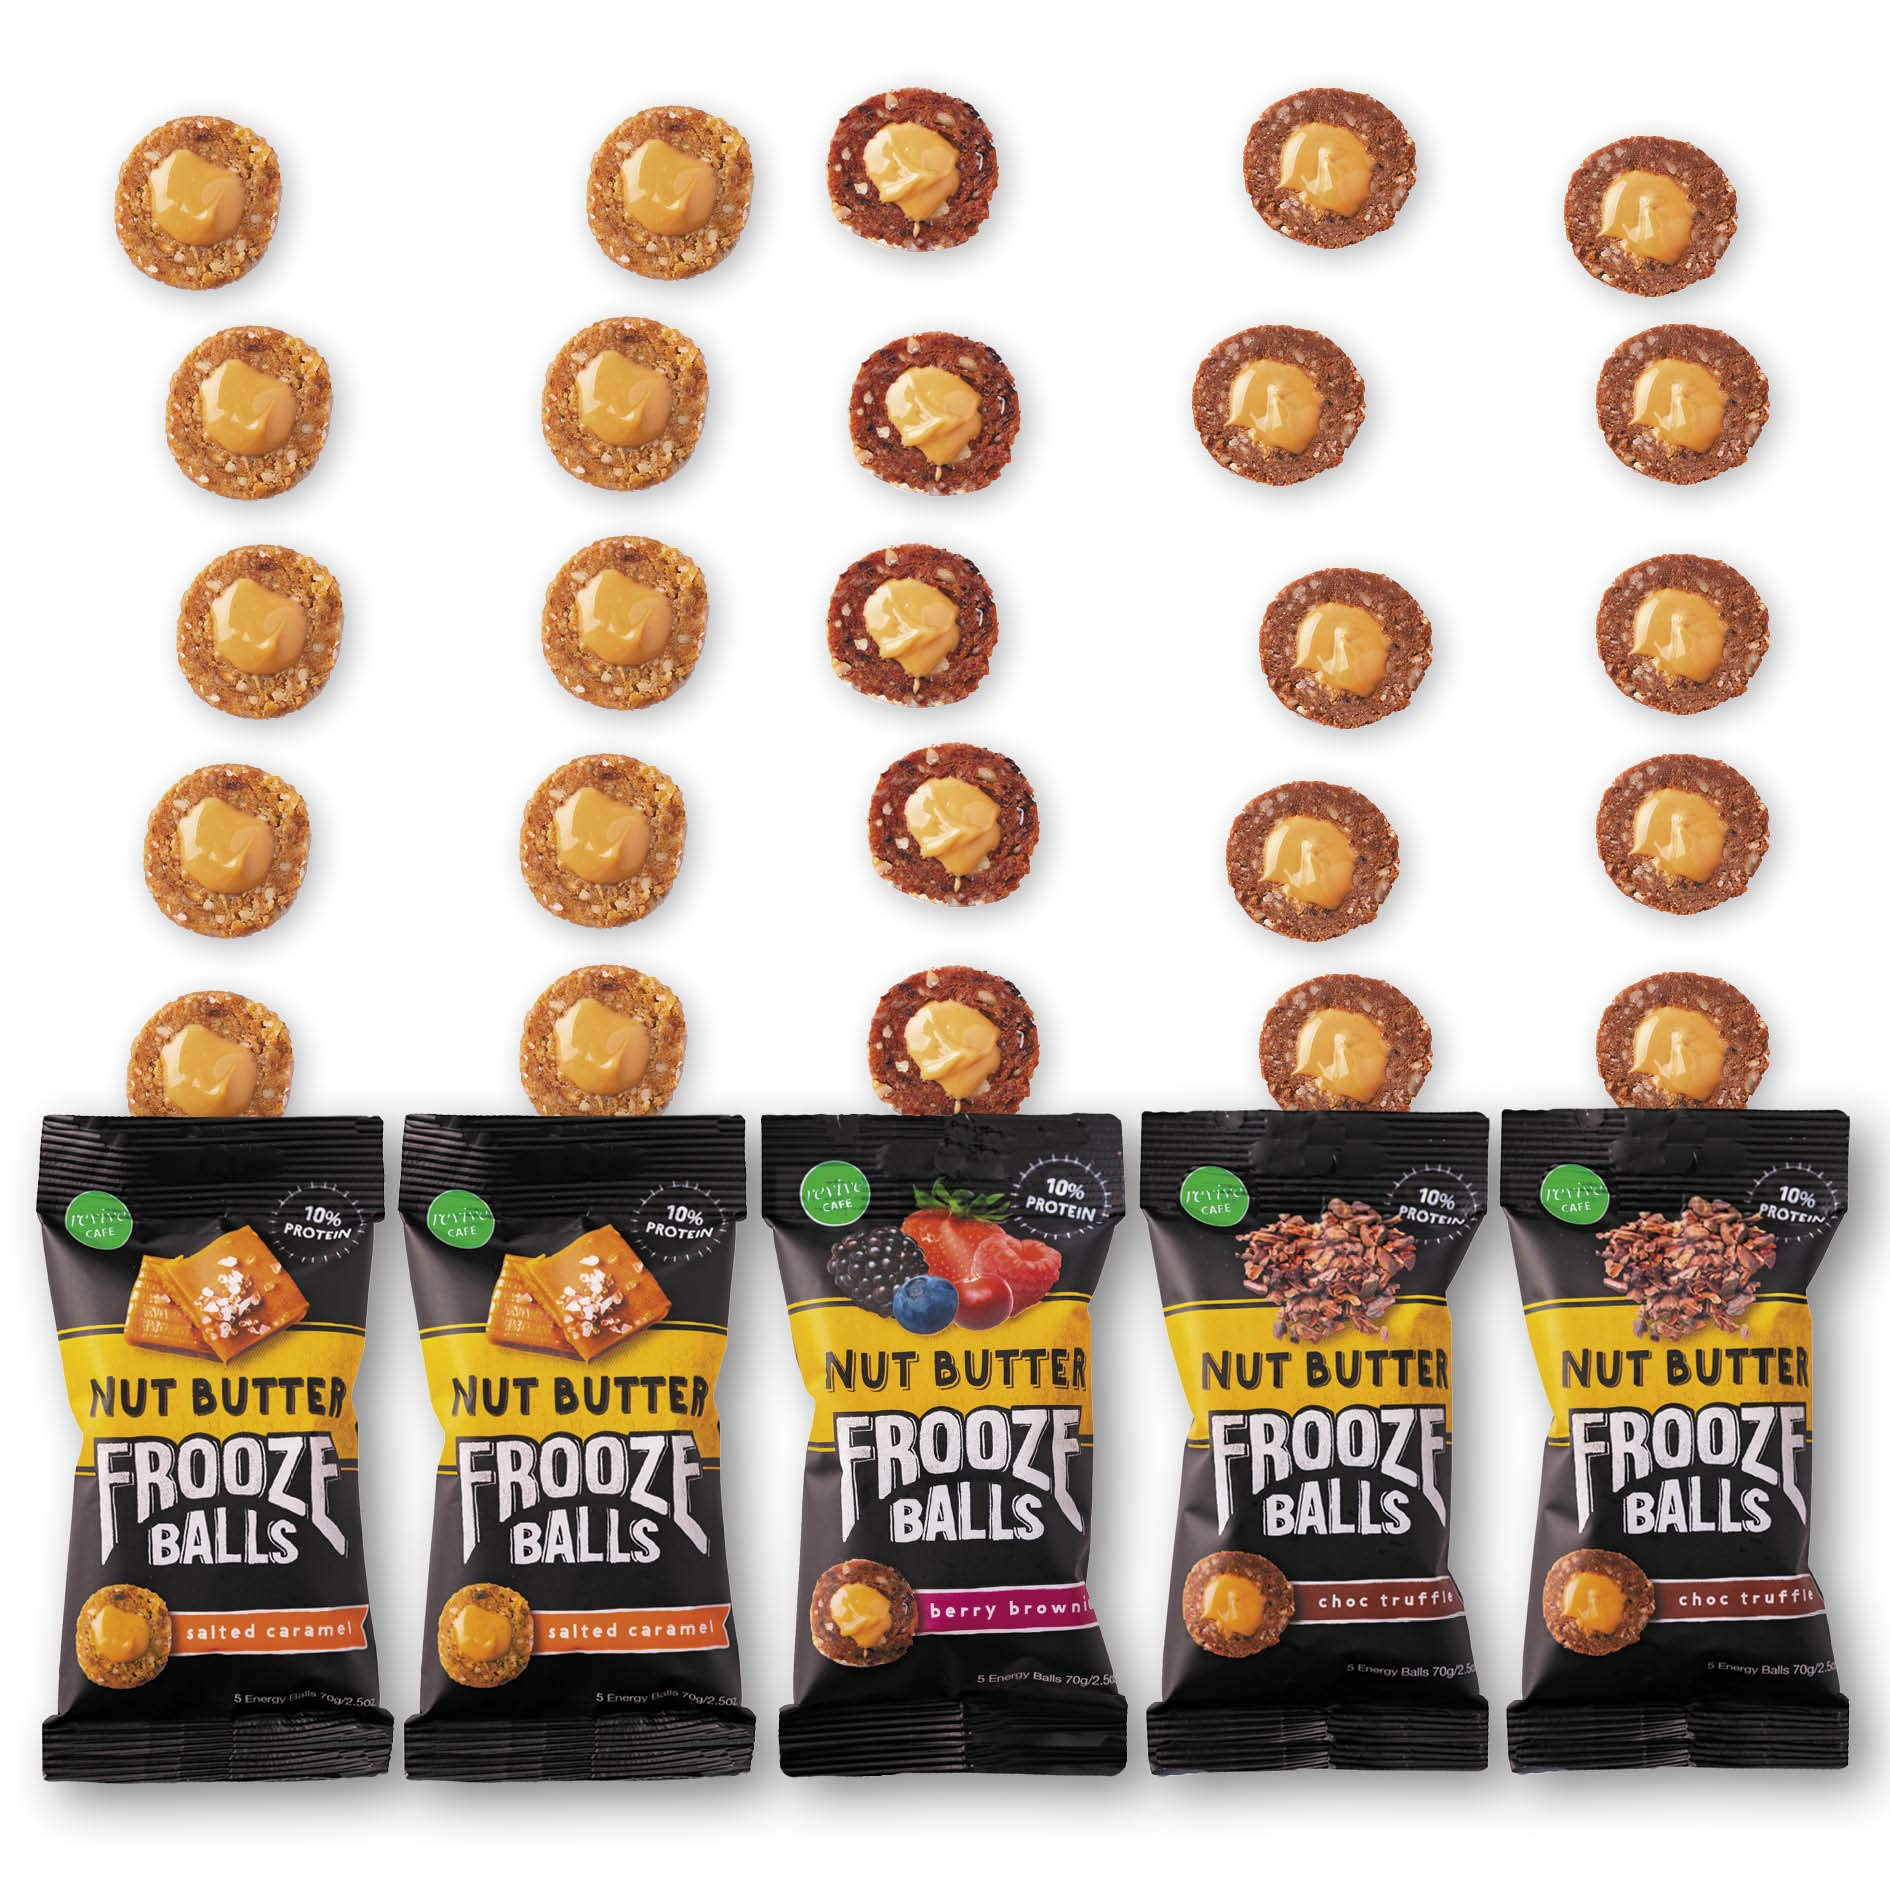 Frooze Balls Peanut Butter Filled Energy Balls, Variety Pack (Pack of 5) | Plant Protein | Gluten Free | Vegan | Non GMO